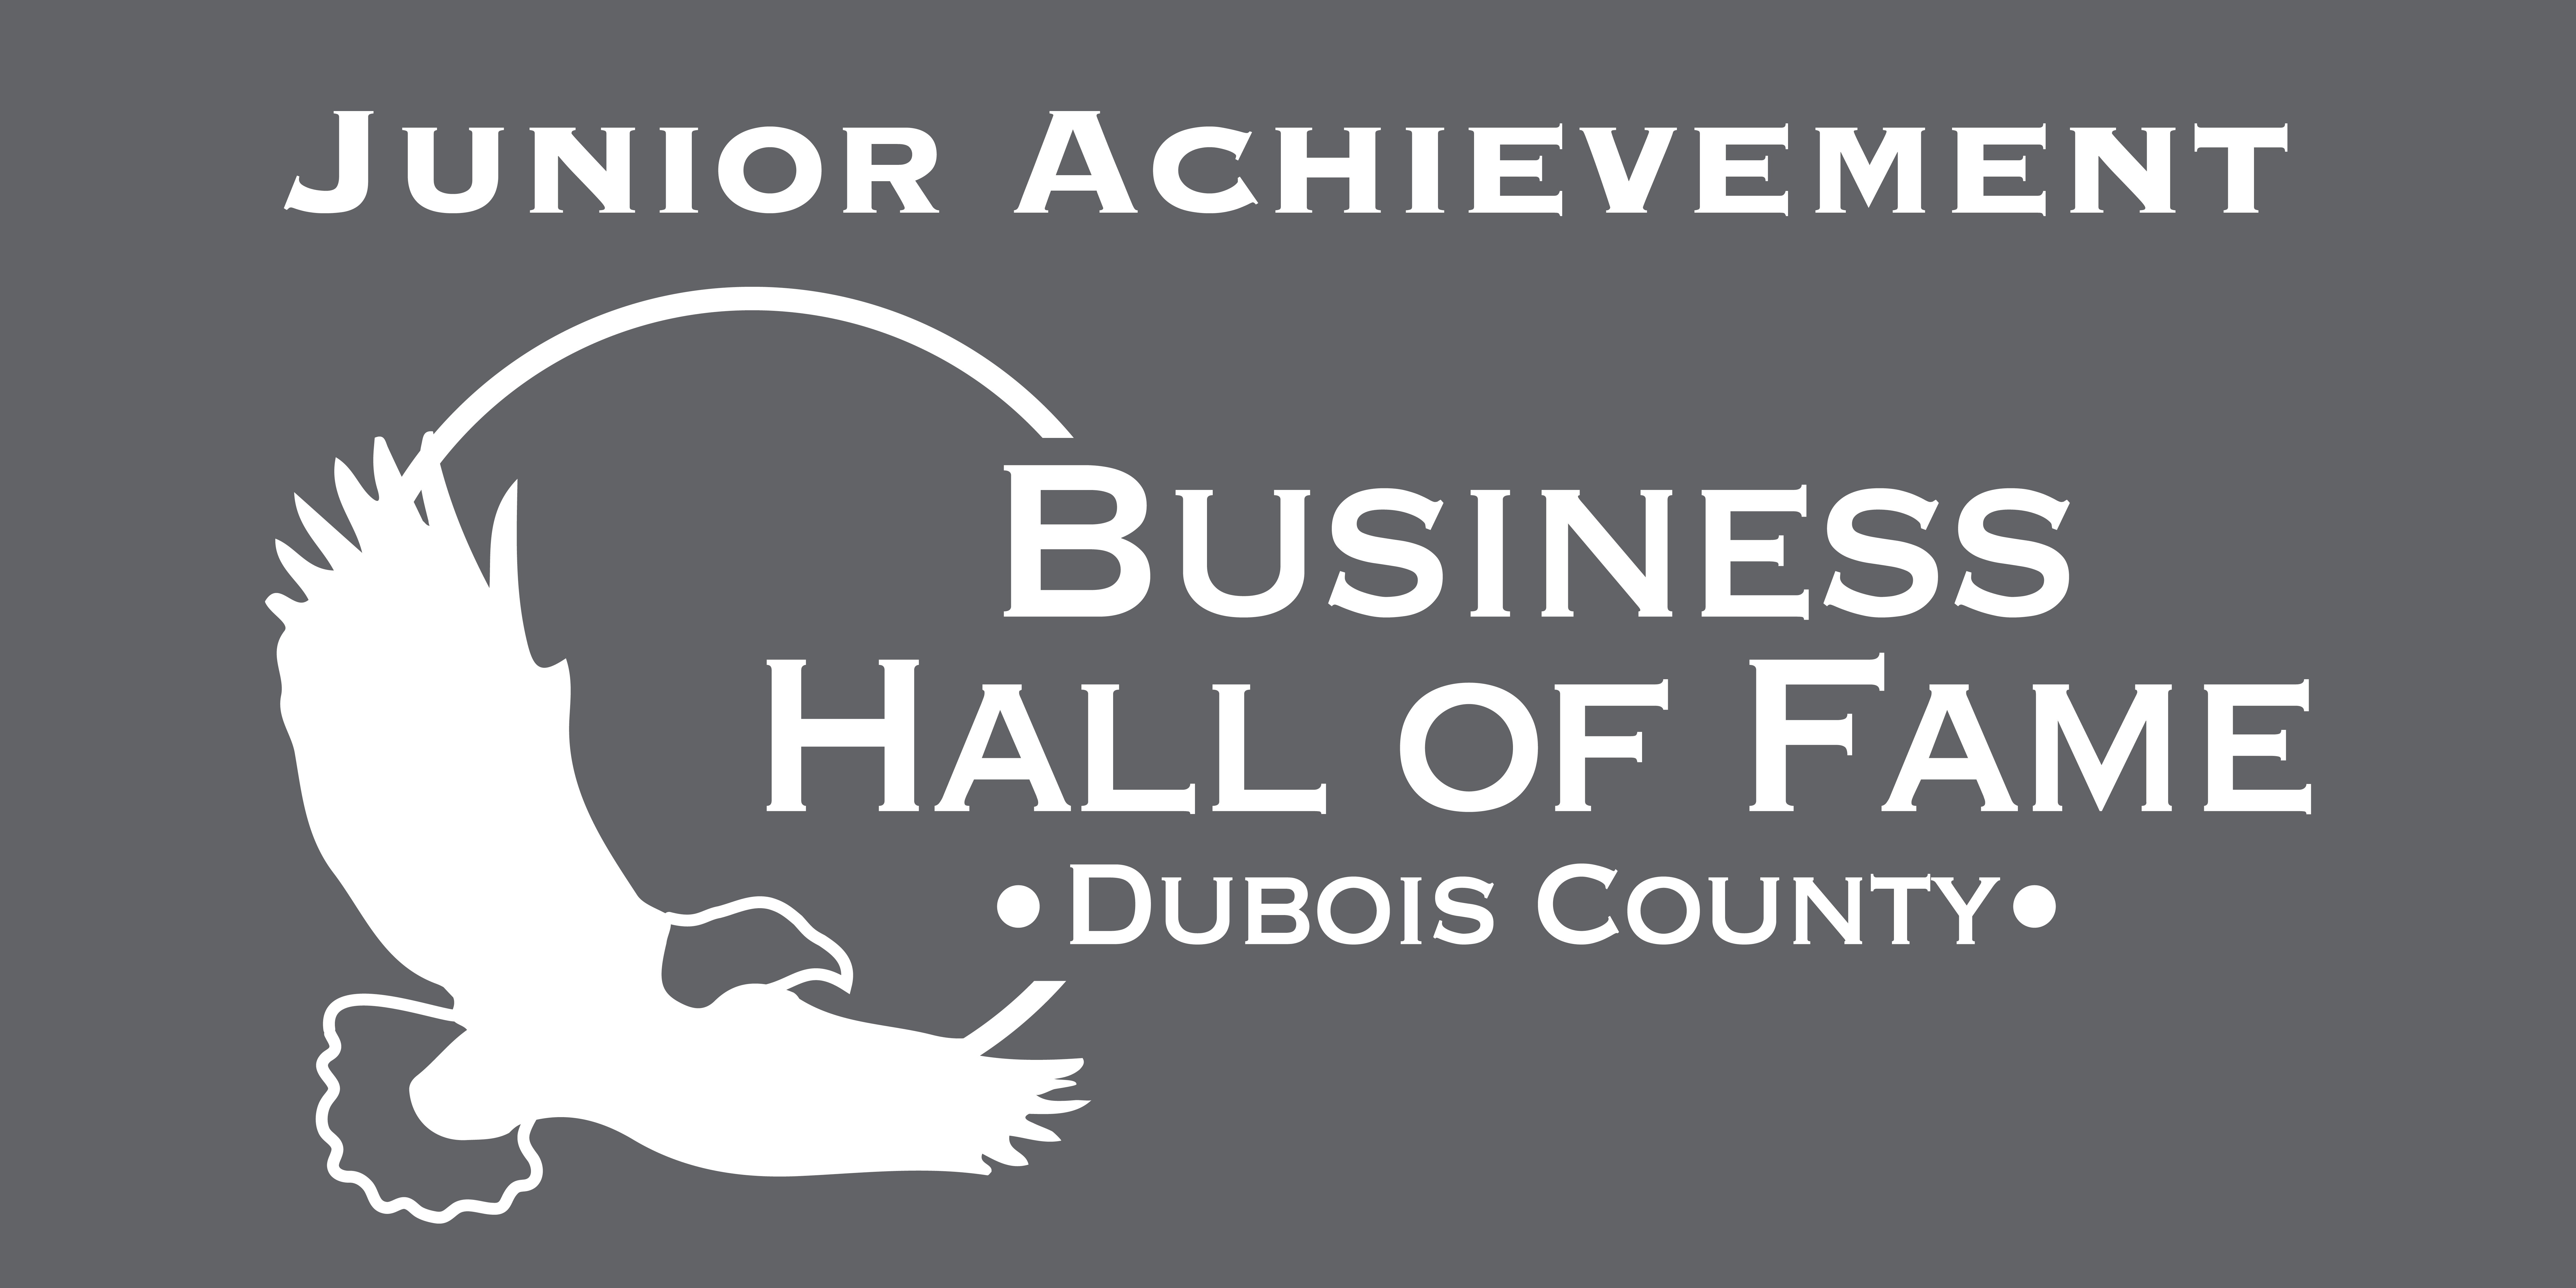 Dubois County Business Hall of Fame